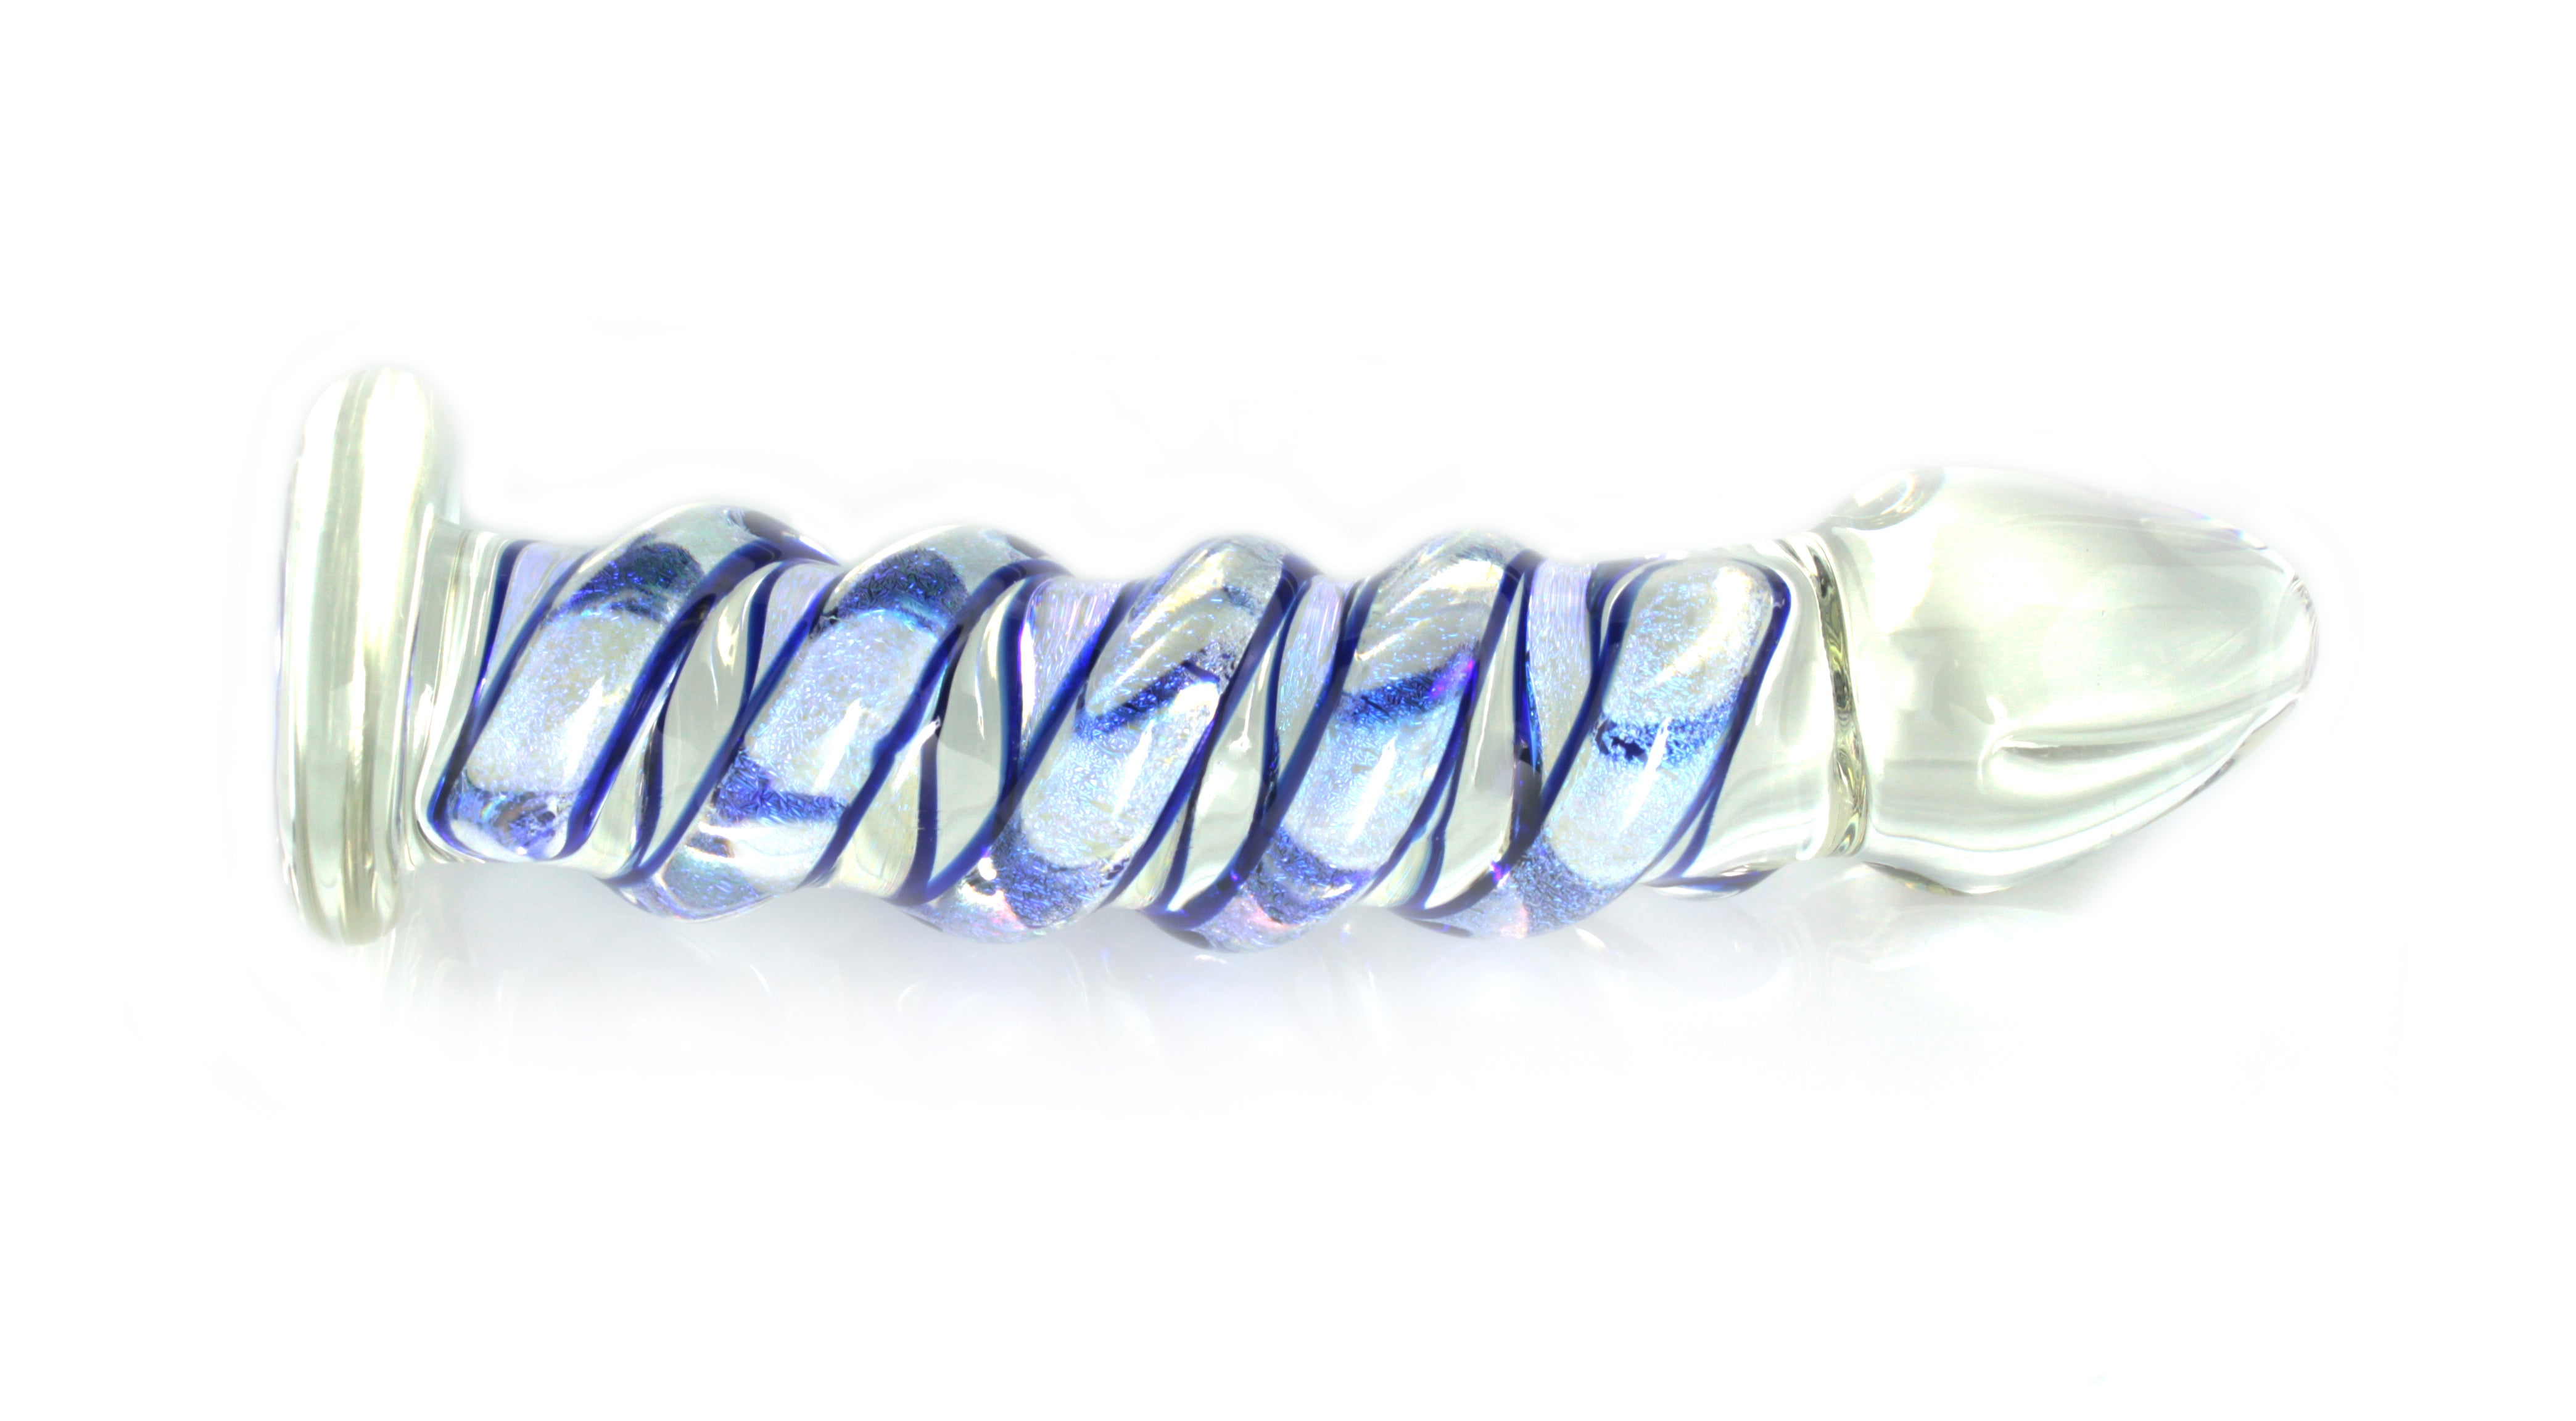 Clear glass dildo with a full blue and purple dichroic wrap